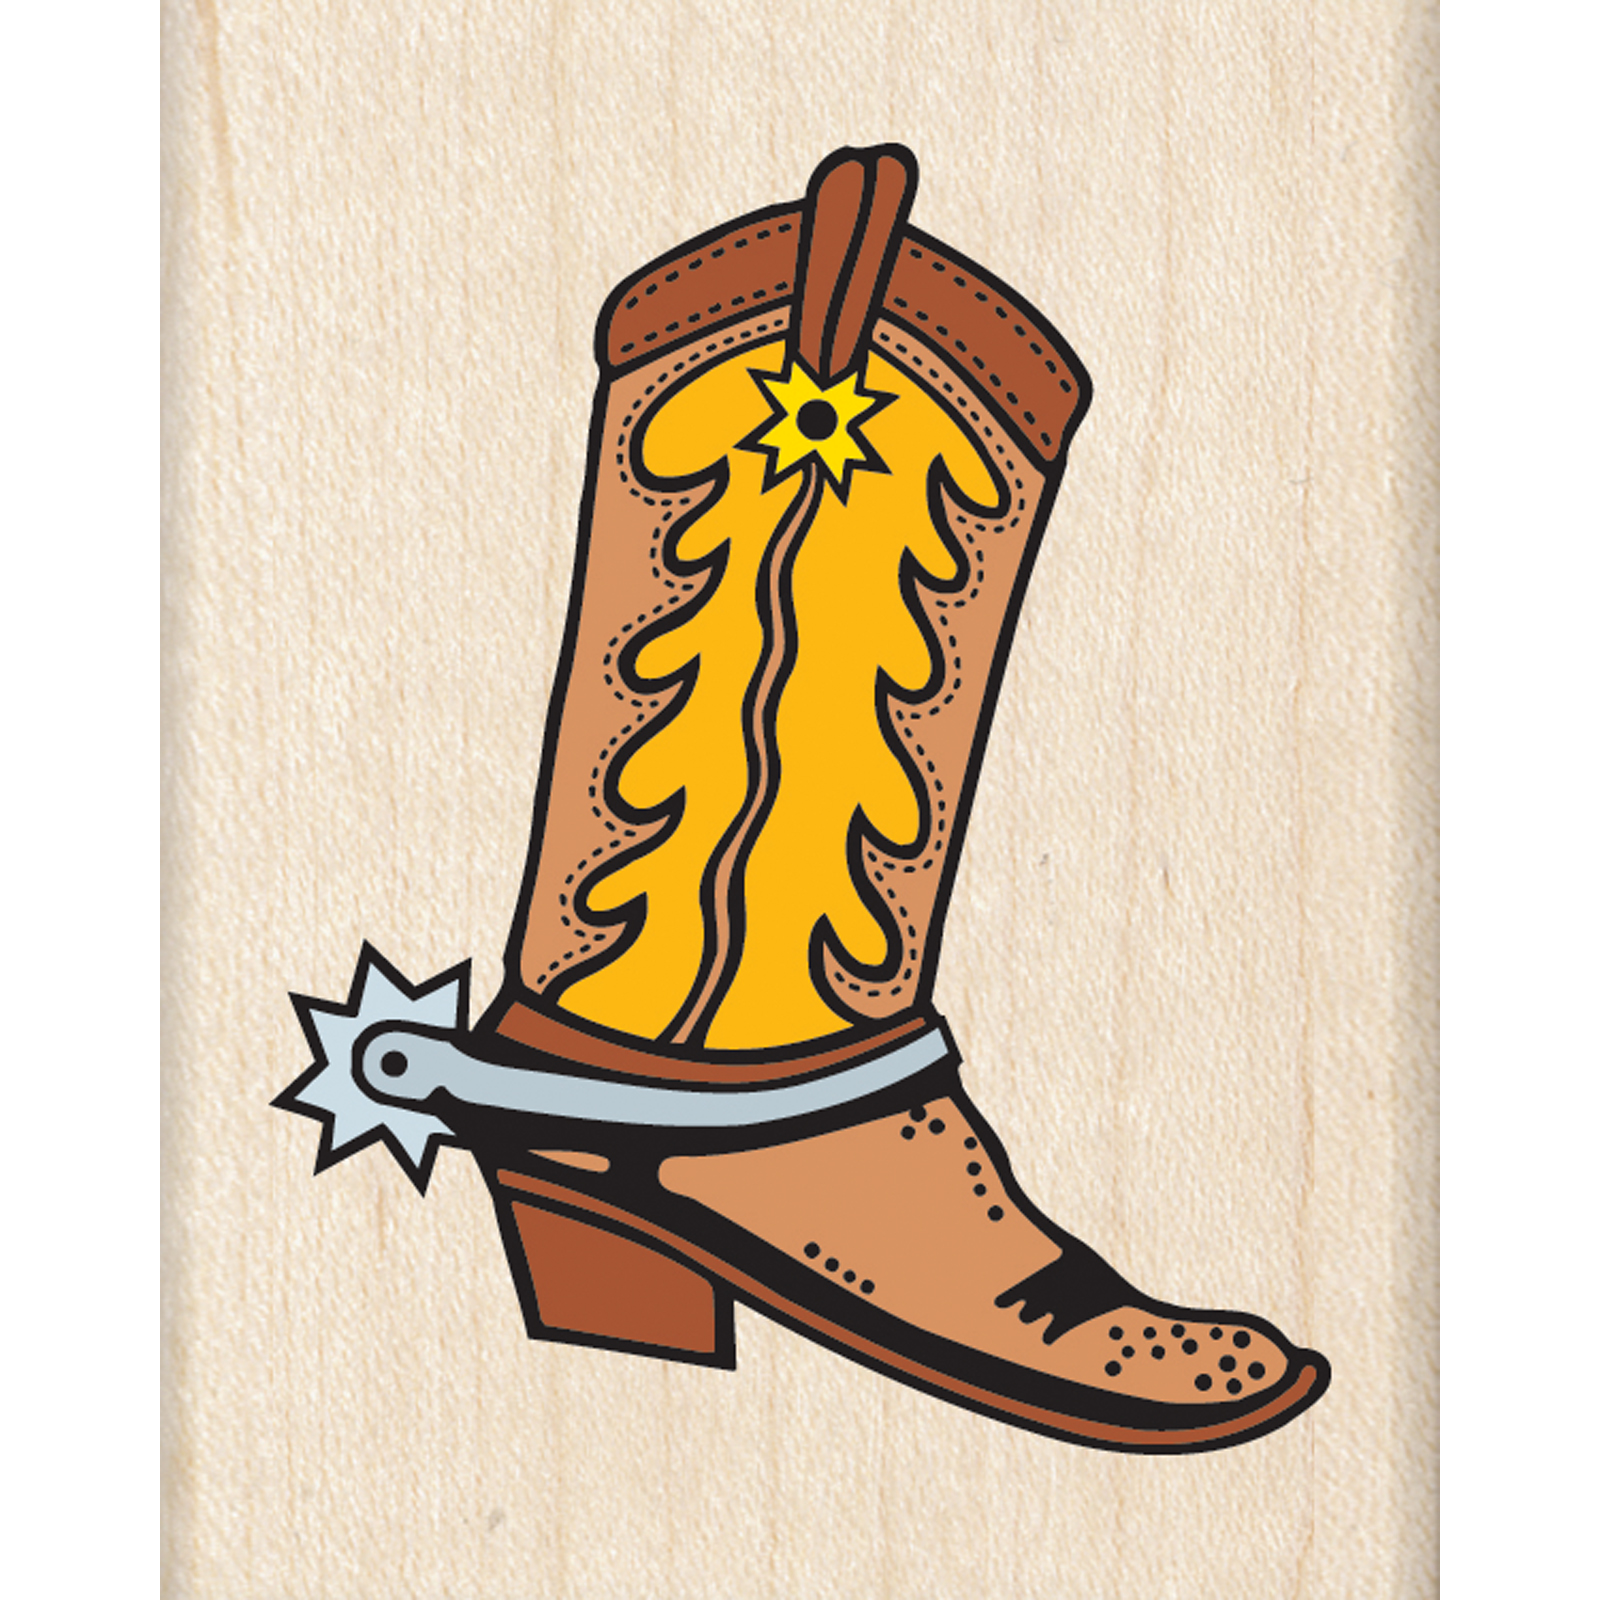 1600x1600 Find The Stamp, Cowboy Boot